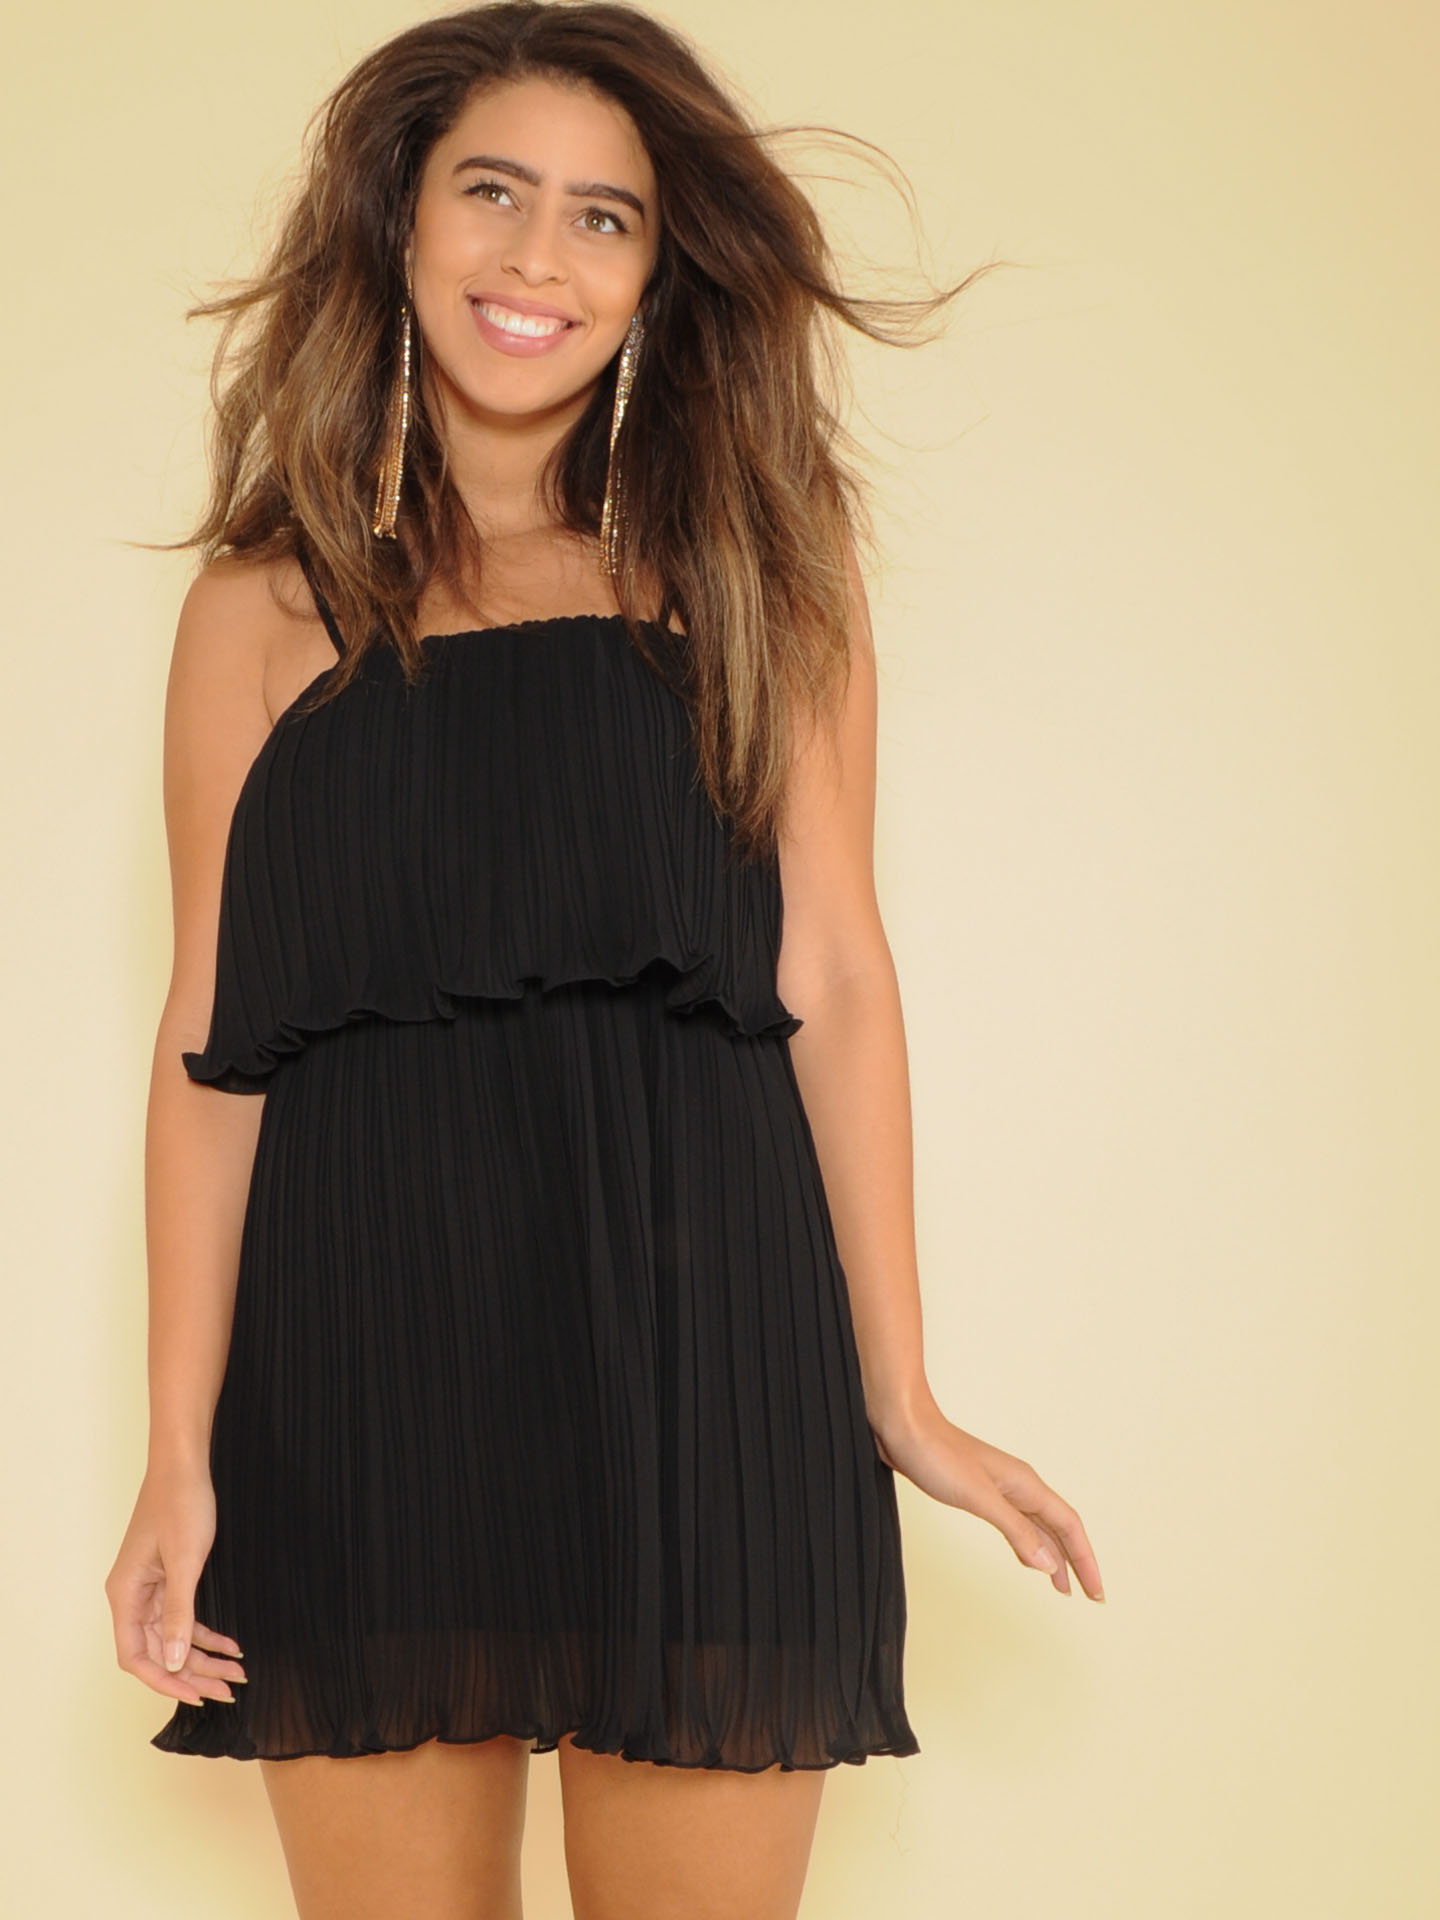 Sarah Dress Black Ruffle Layered Mini Front